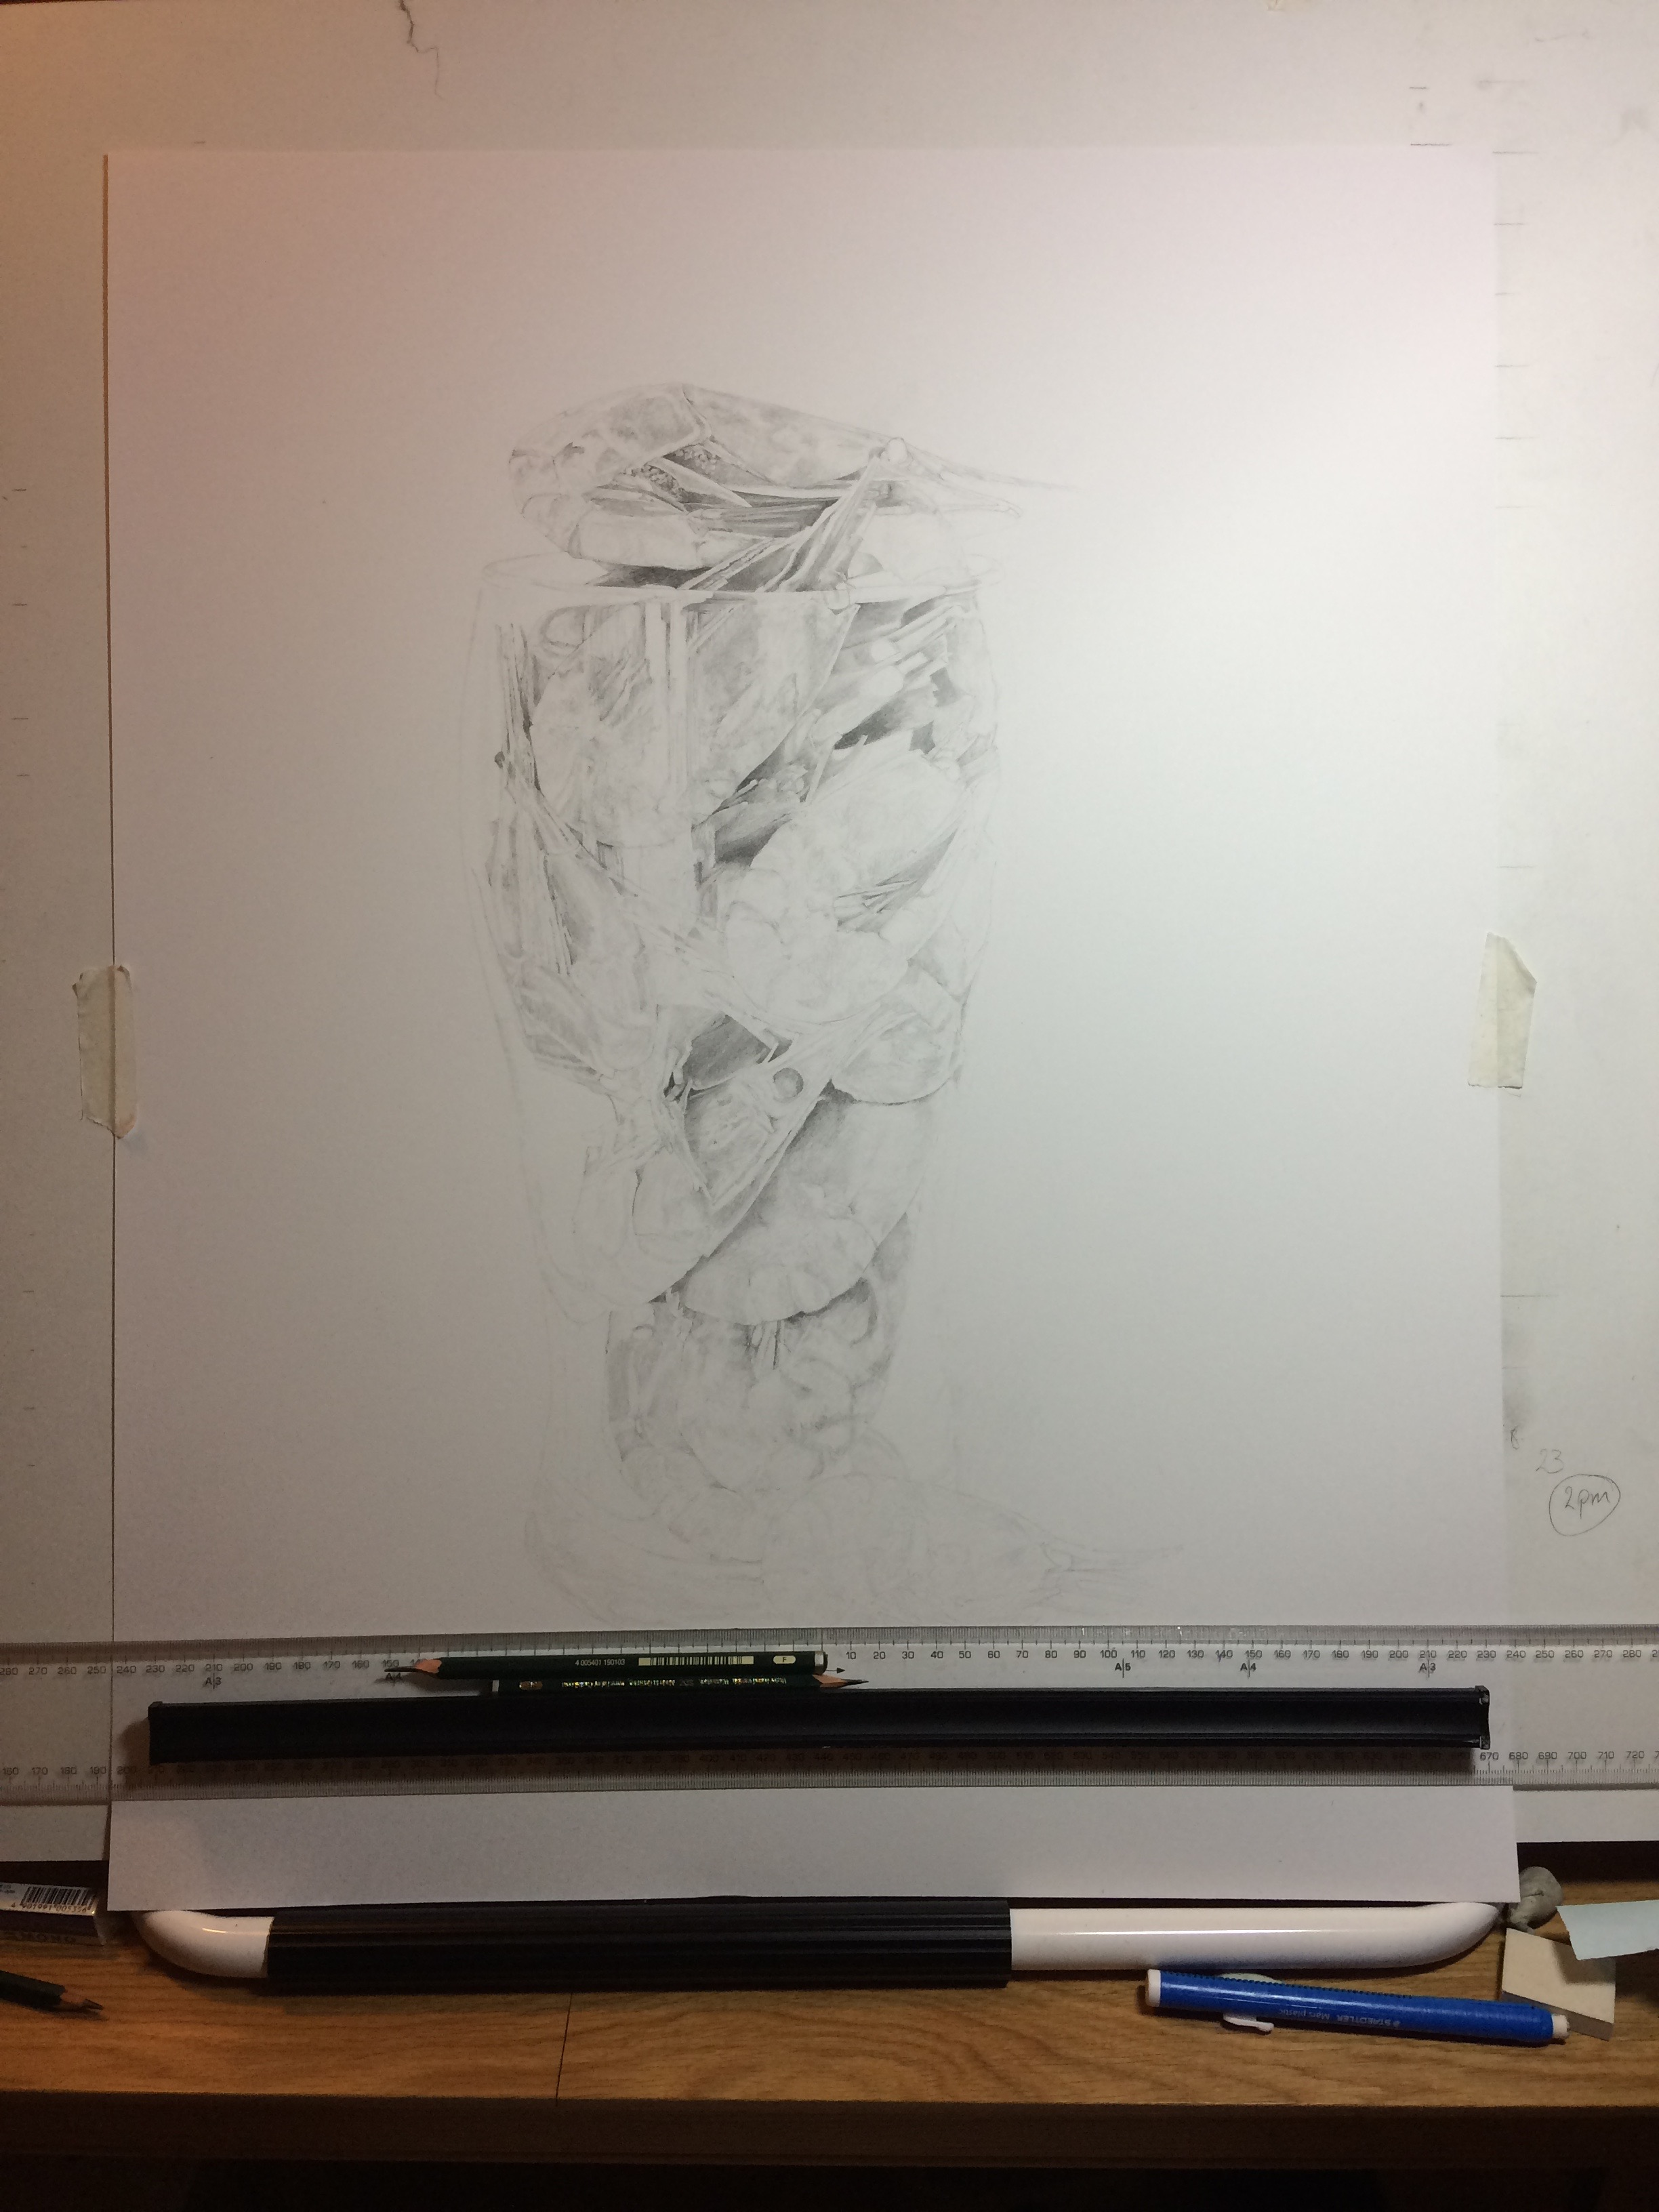 Adding tone to the Pint of Prawns drawing